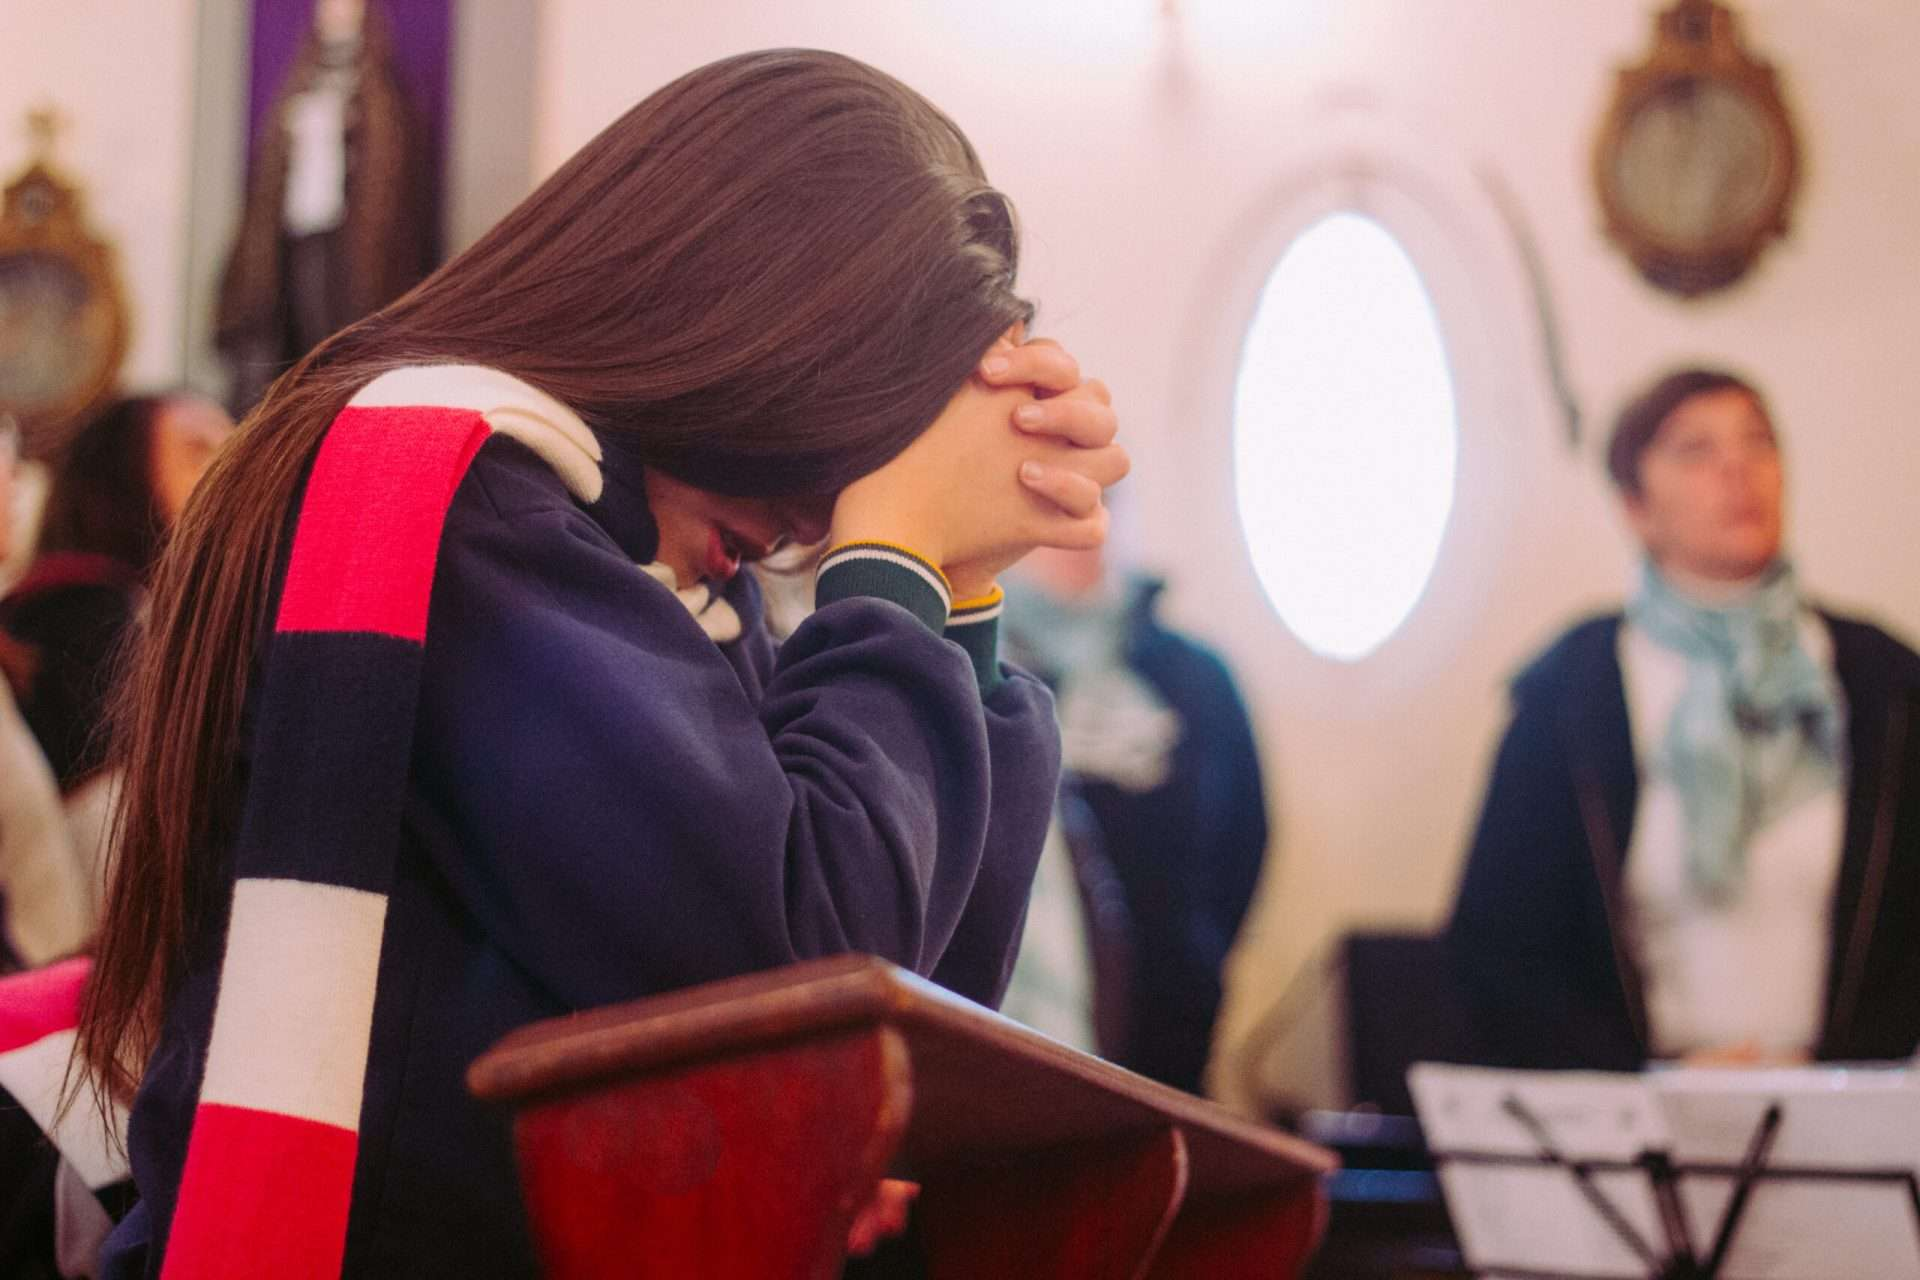 7 Tips to Help You Stay Focused at Mass